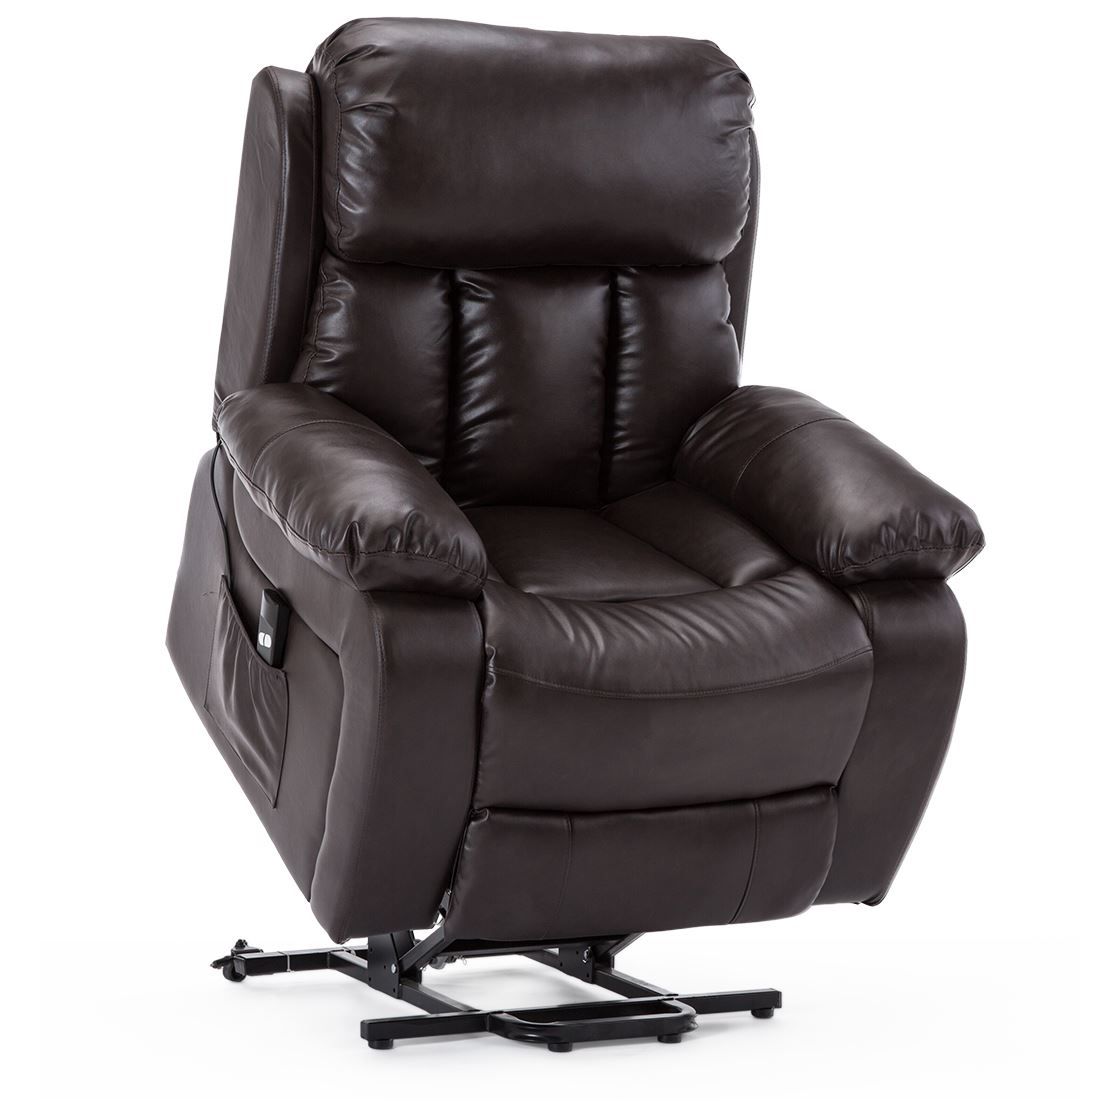 CHESTER-ELECTRIC-RISE-LEATHER-RECLINER-POWER-ARMCHAIR-HEATED-MASSAGE-SOFA-CHAIR thumbnail 14